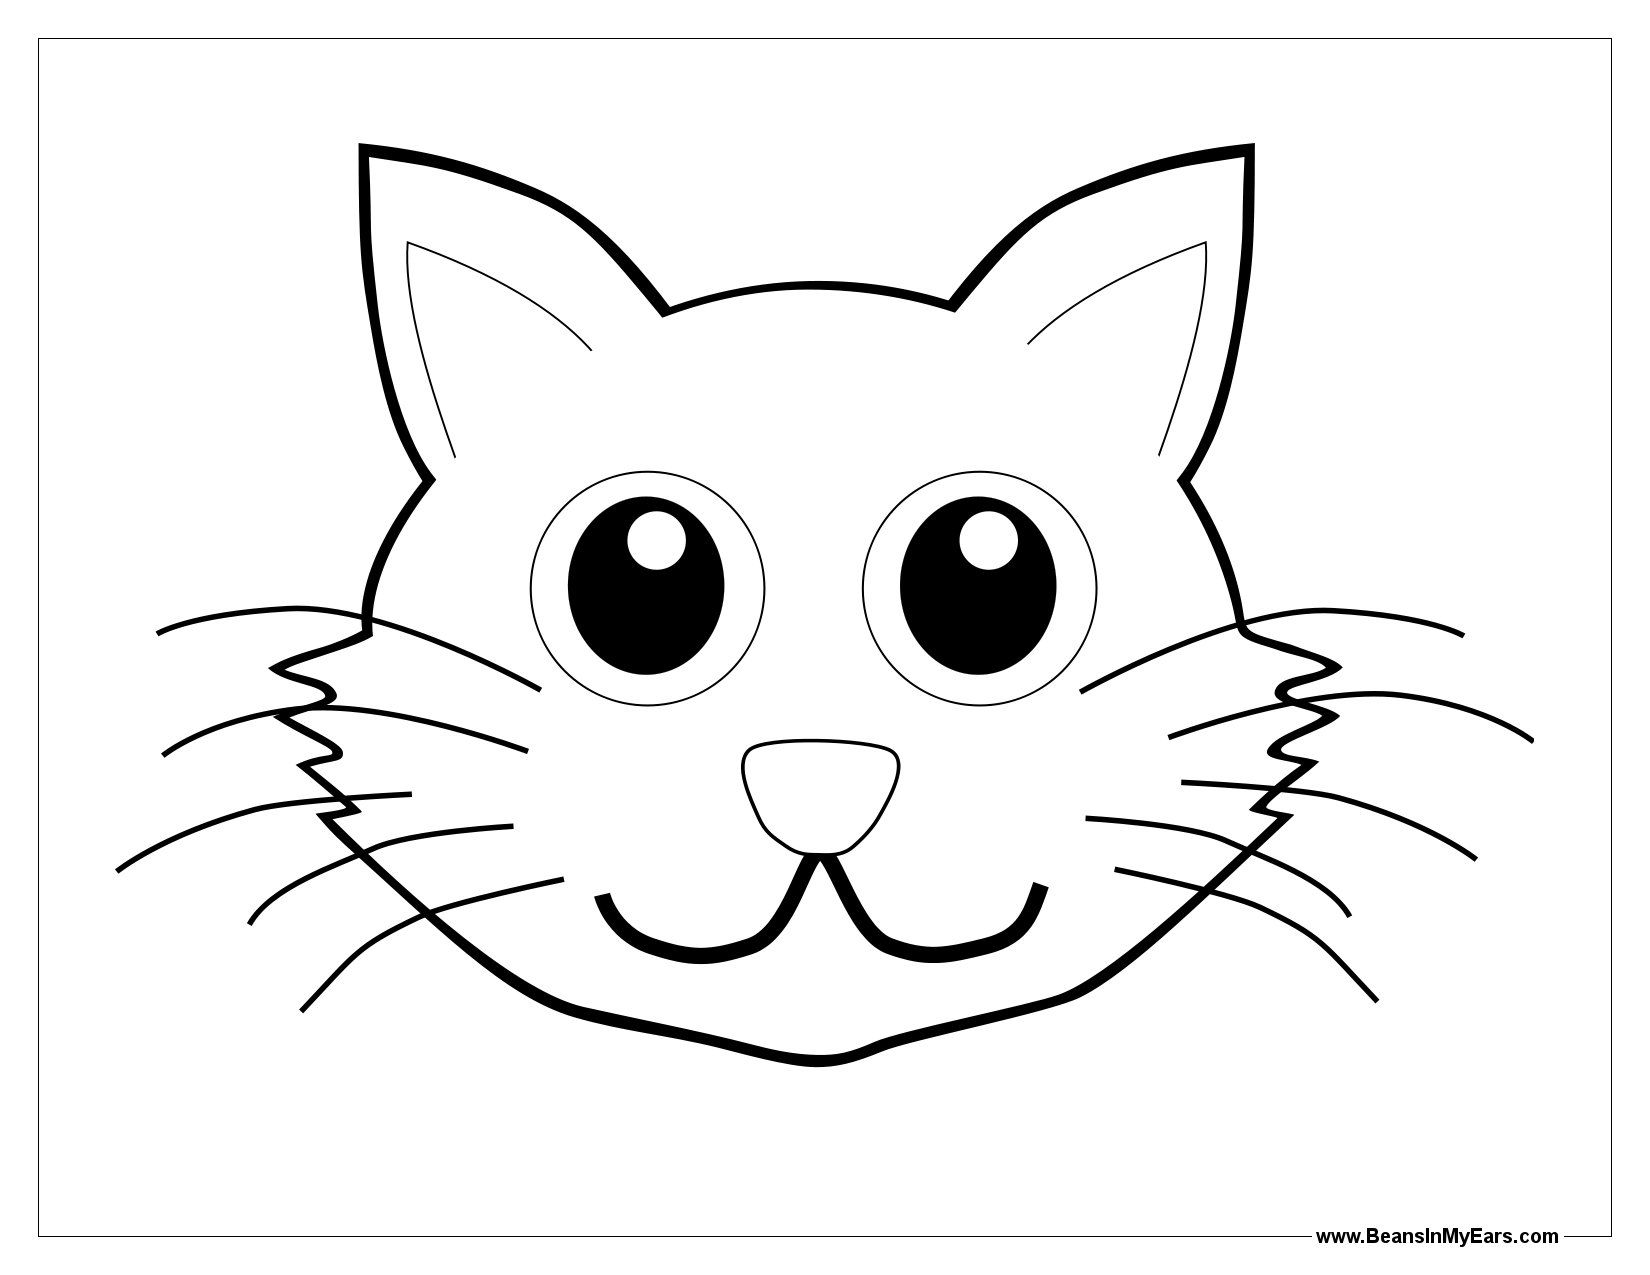 dog face coloring pages dog face coloring page coloring home coloring face dog pages